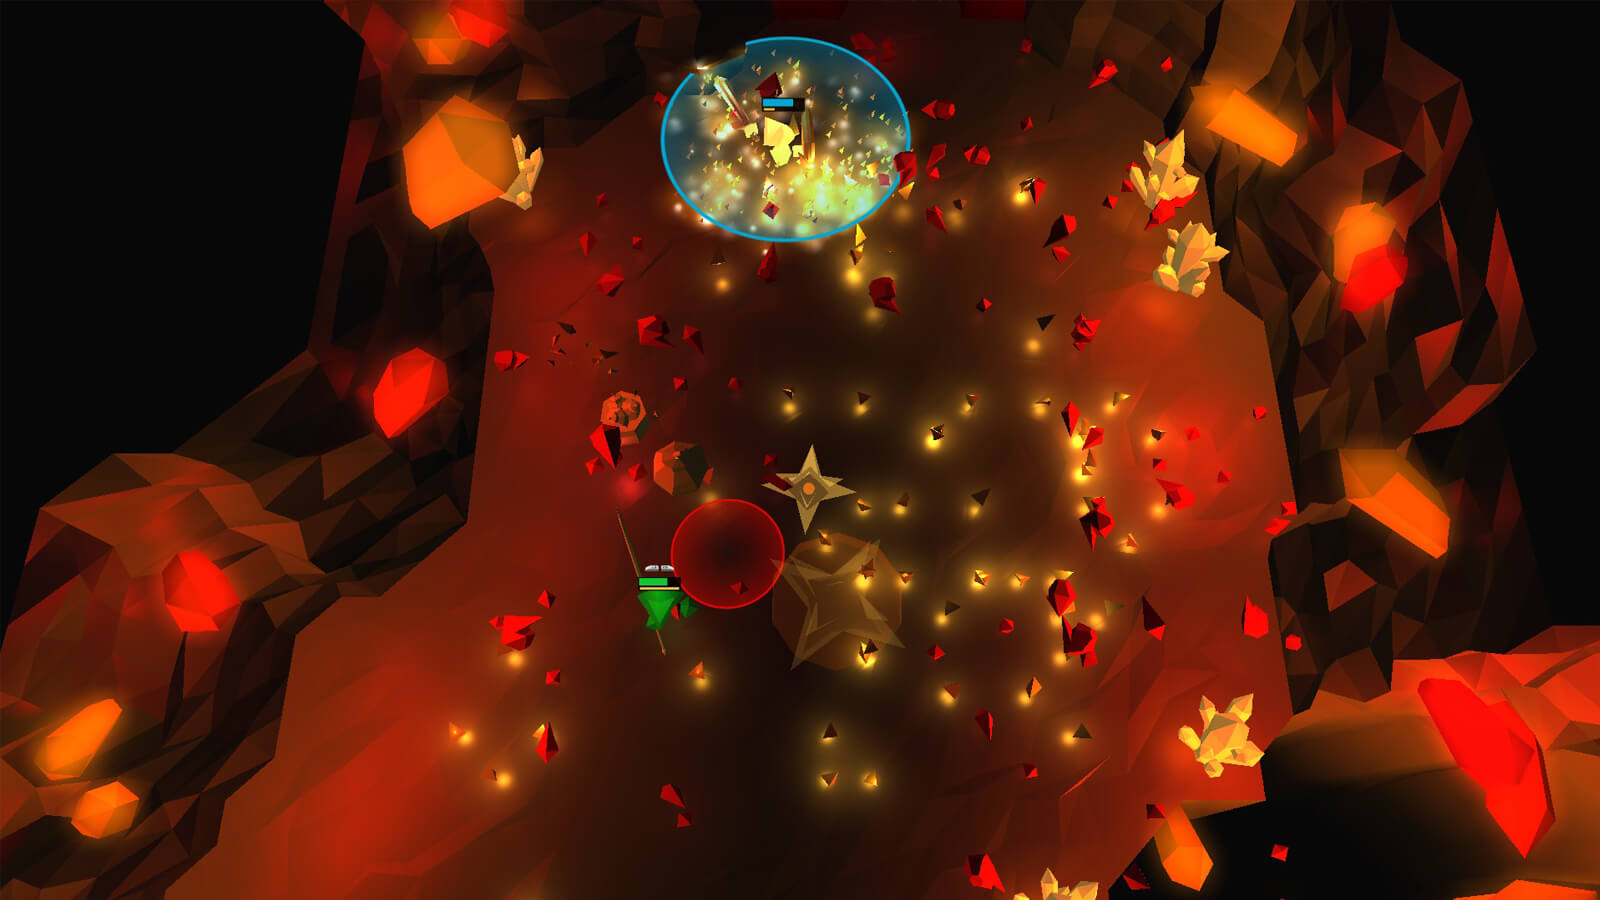 A green and yellow player fight in a red cavern full of crystal shards.